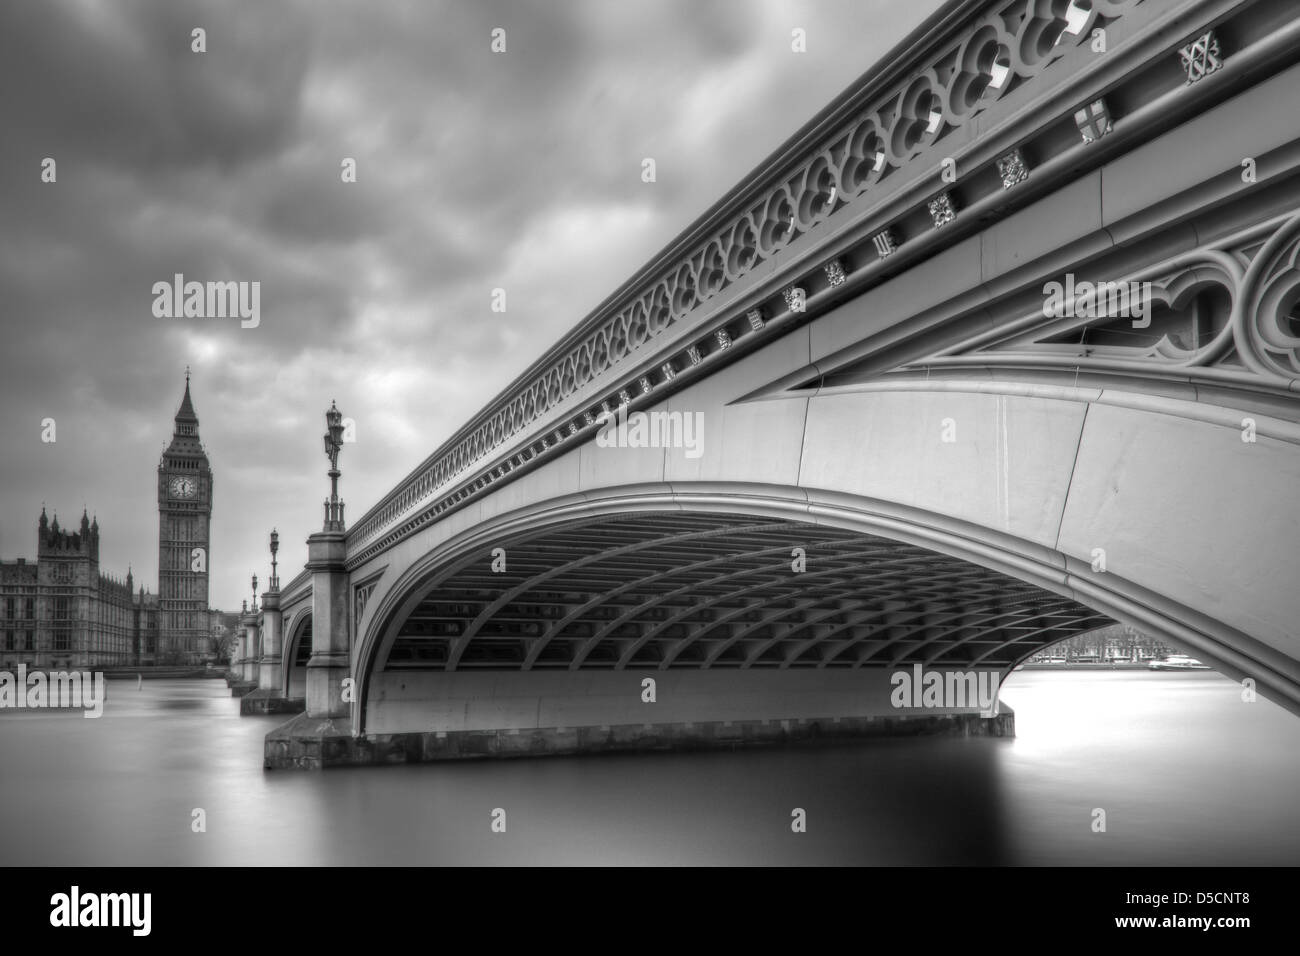 Westminster Bridge, Big Ben and The Houses of Parliament, London, England - Stock Image